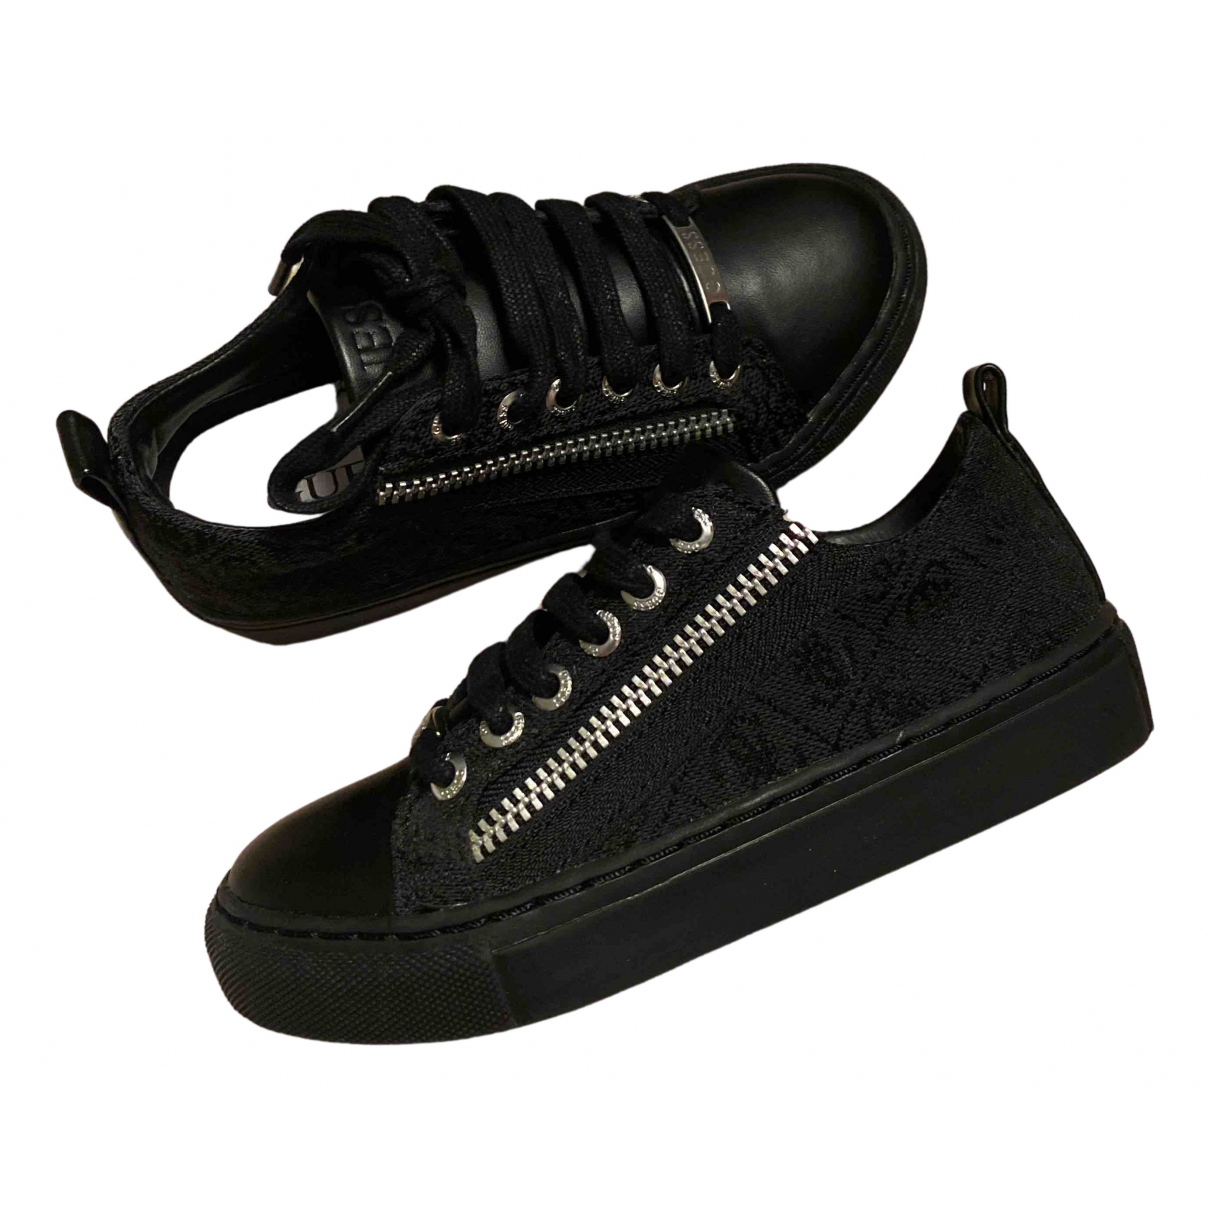 Guess N Black Cloth Trainers for Kids 28 FR